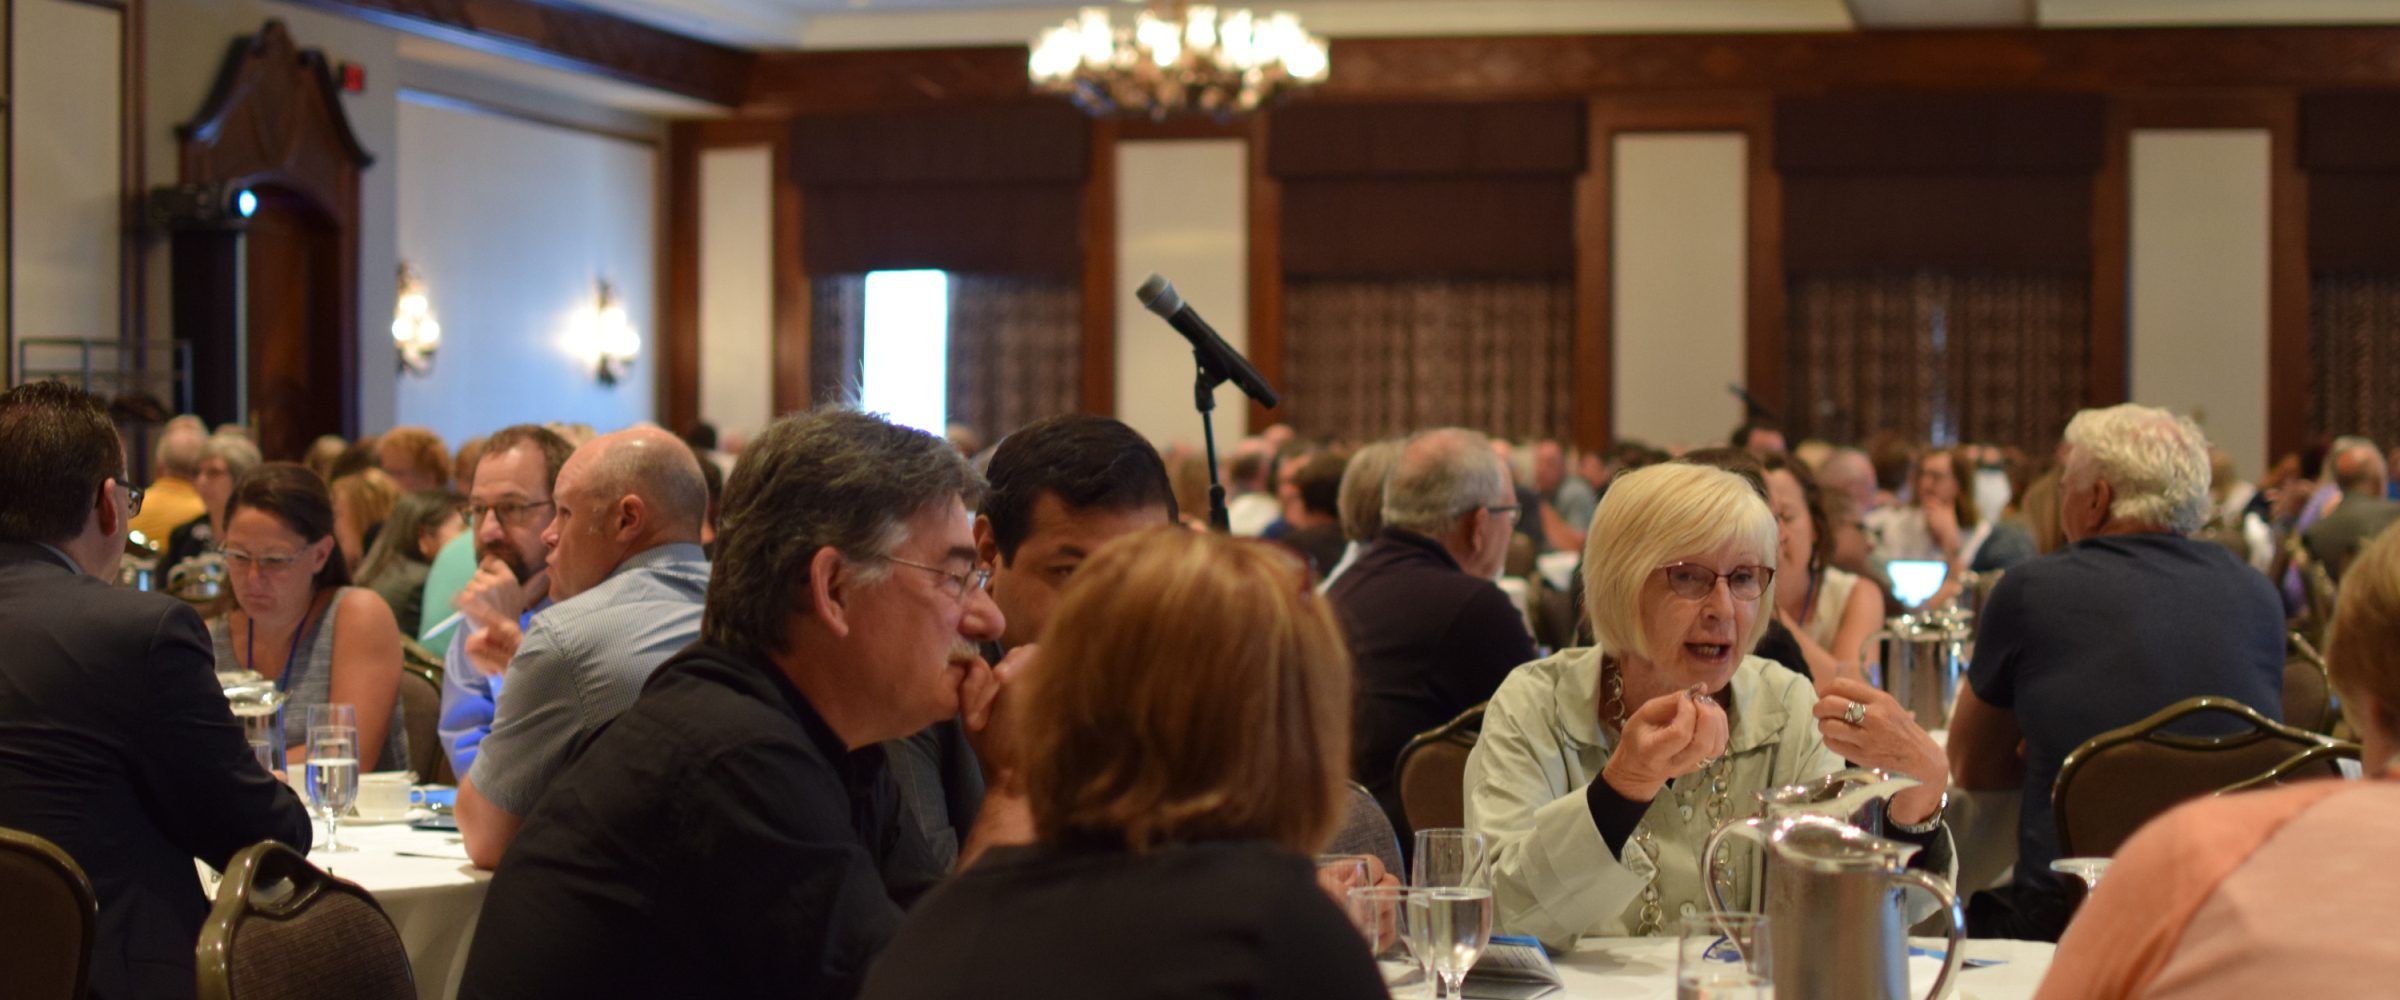 table talks at BCSTA event